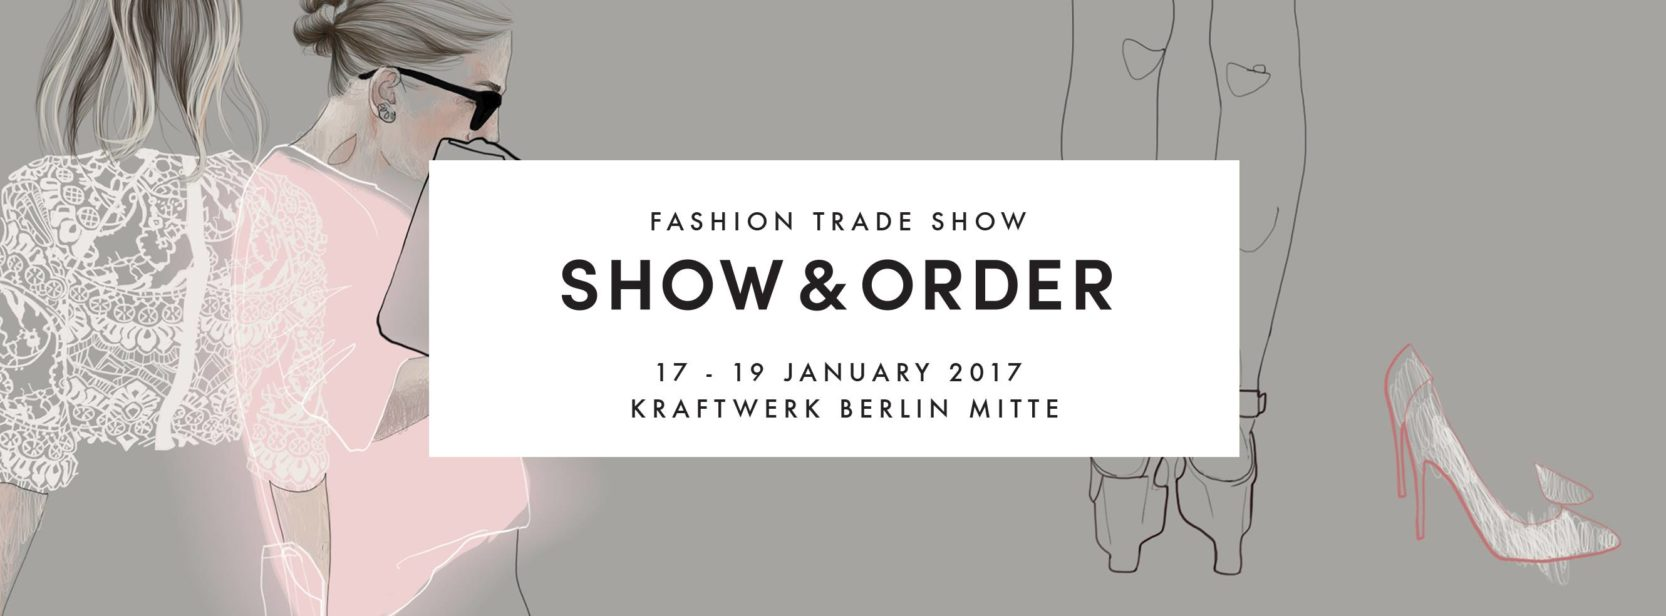 Salon show order berlin janv 2017 by sophie paris for Salon de la mode paris 2017